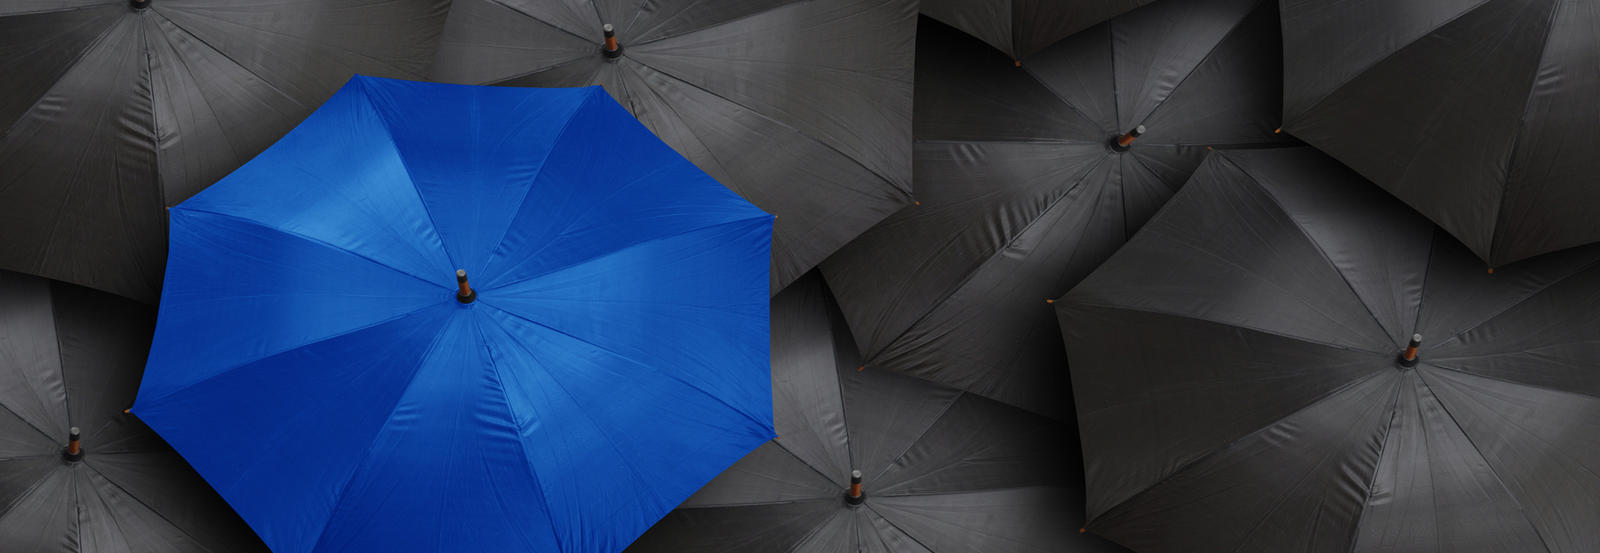 Blue umbrella, in the middle of many black umbrellas